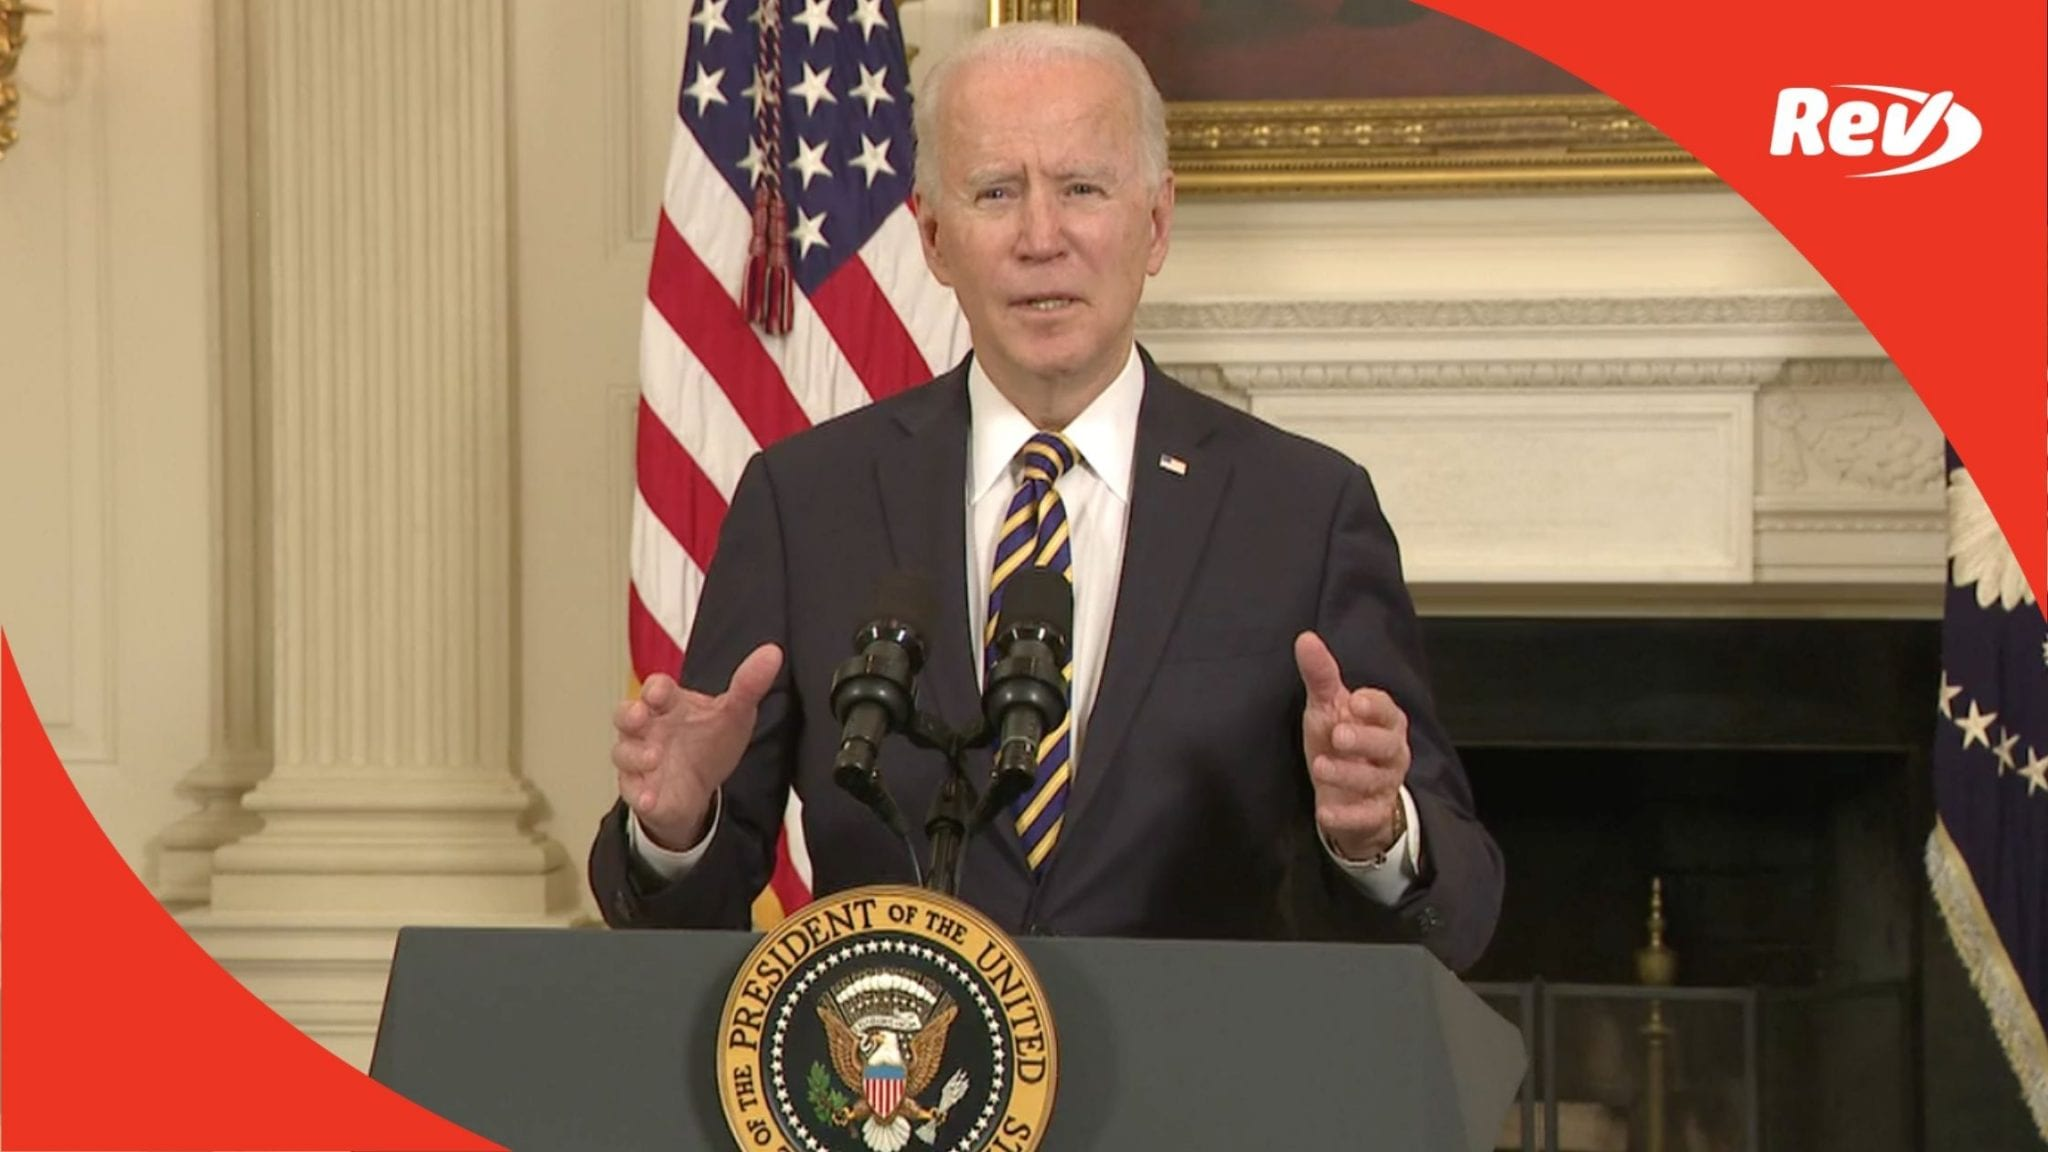 Joe Biden Remarks on Supply Chain Executive Order Transcript February 24